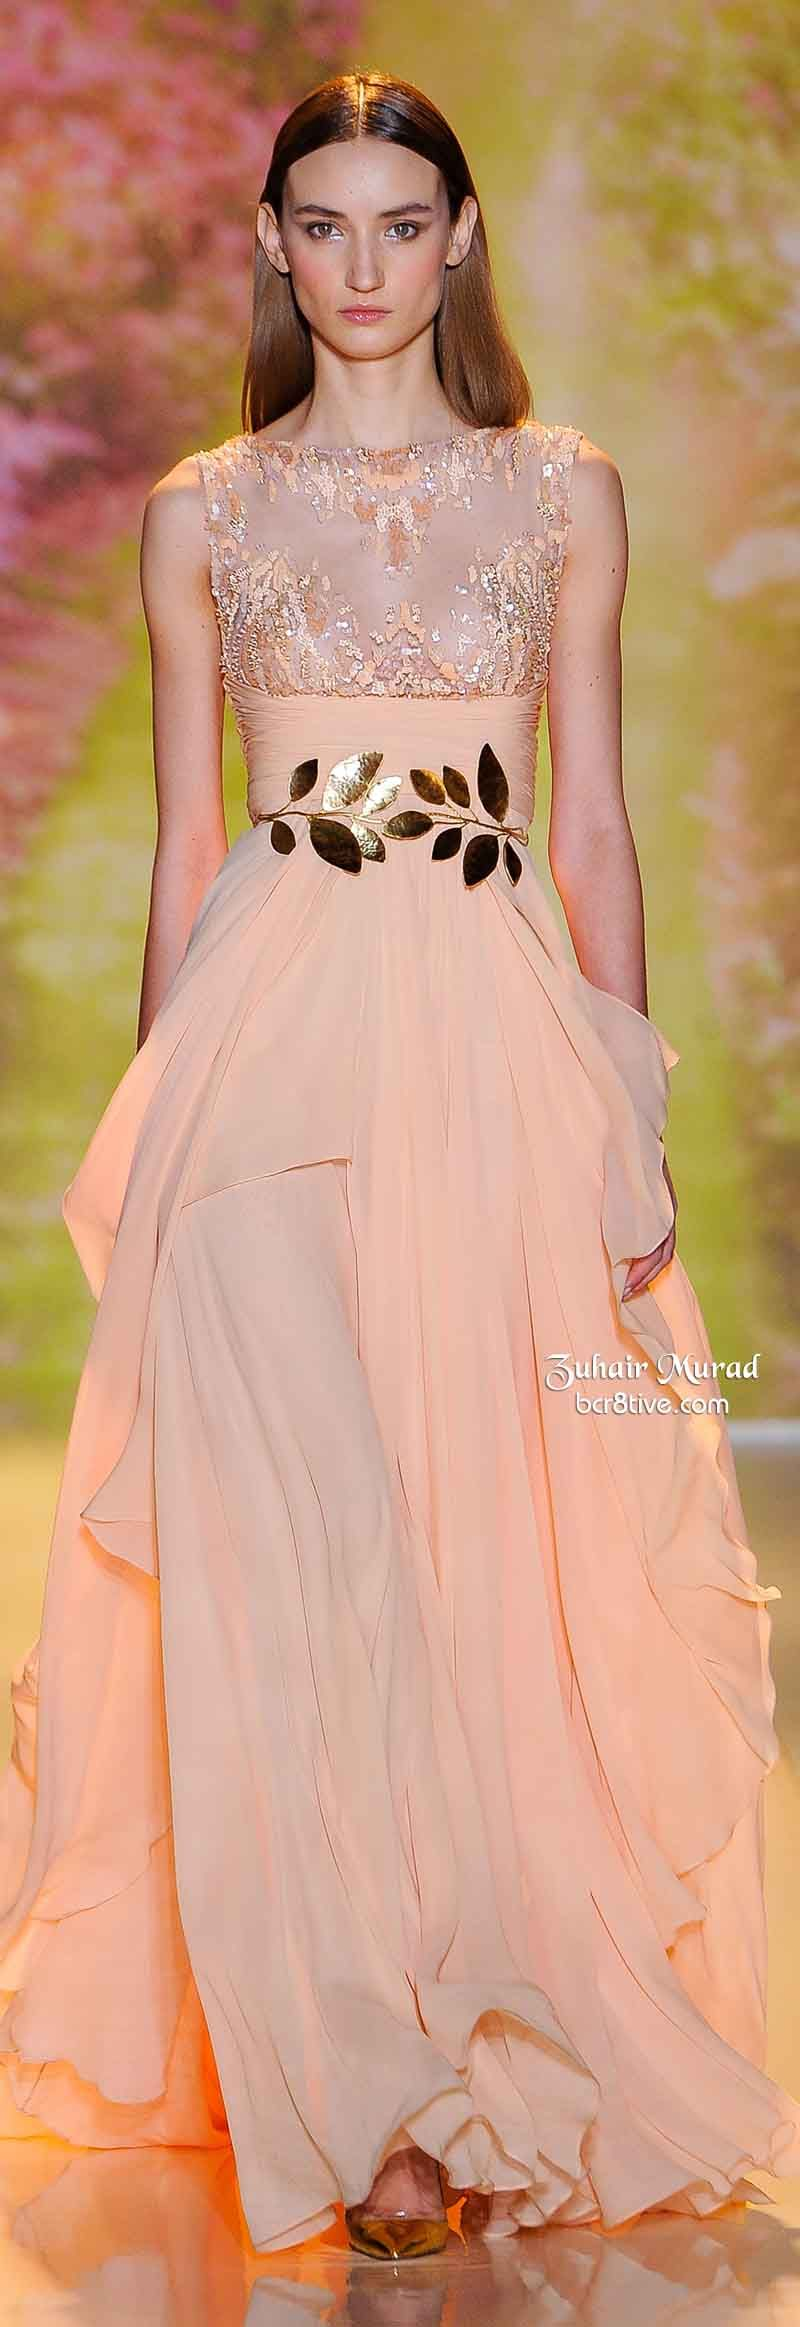 Zuhair Murad Spring 2014 Haute Couture | Coral and Peach ...